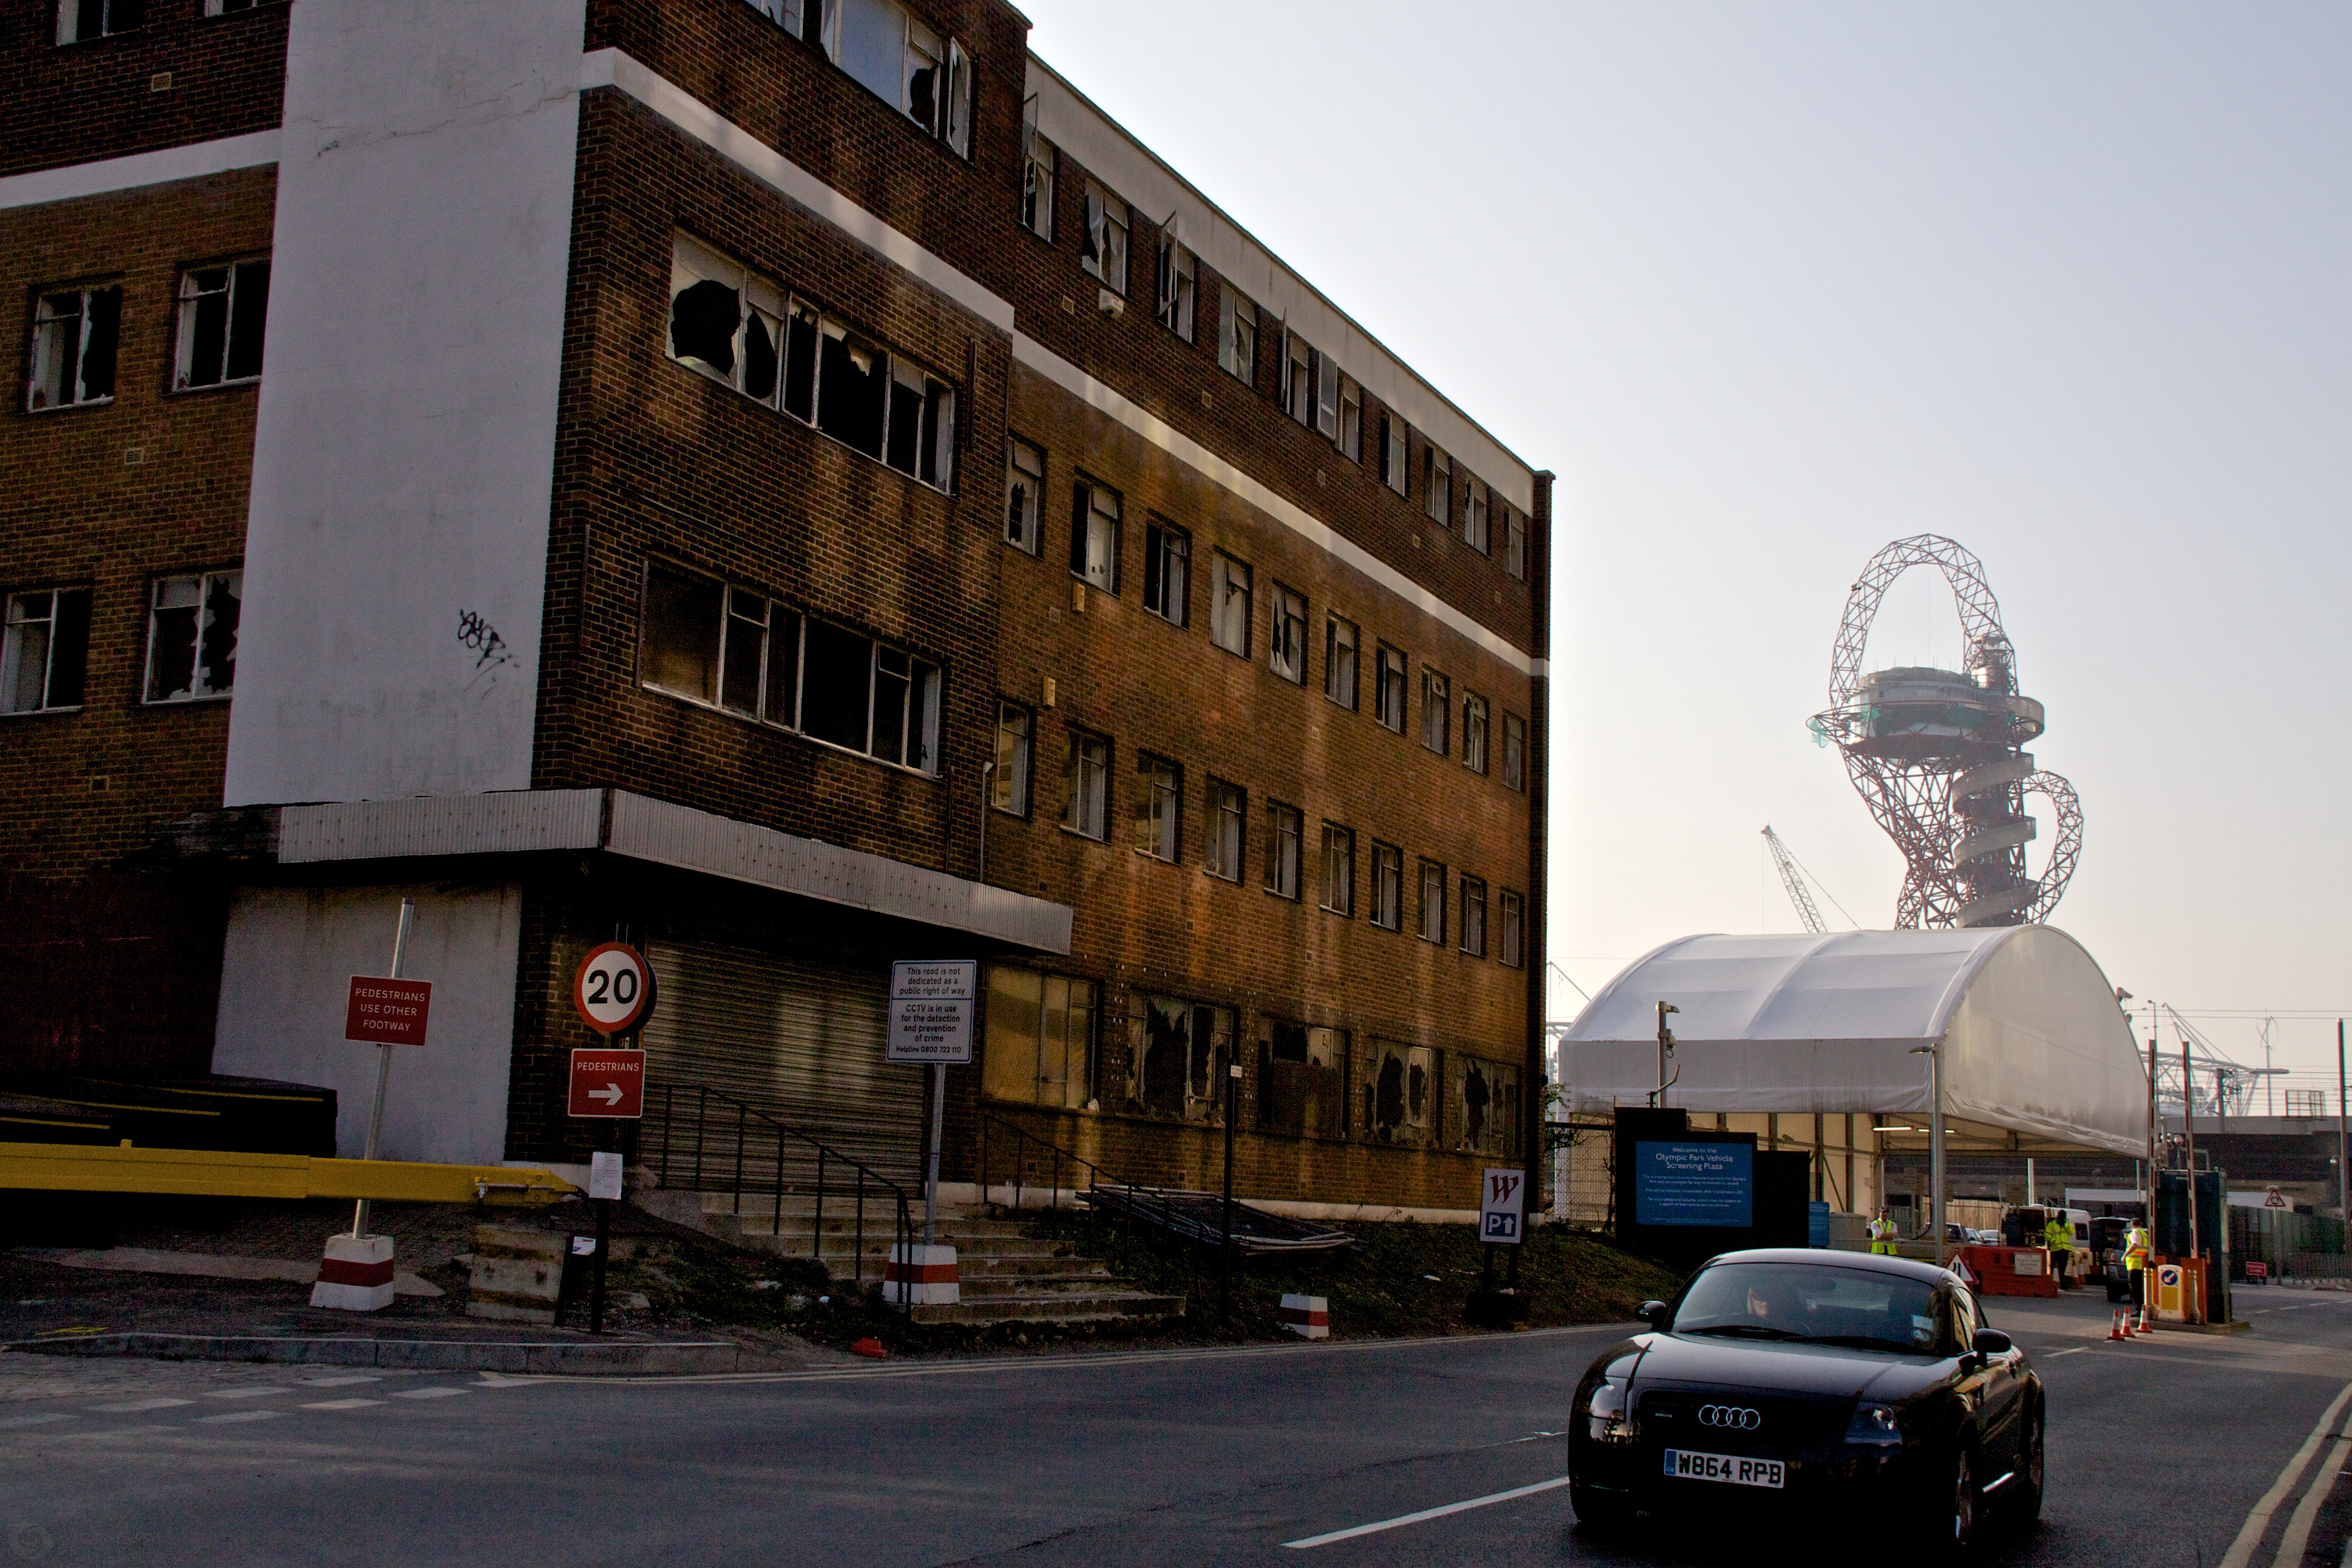 View of the entrance to the Olympic site with a derelict building